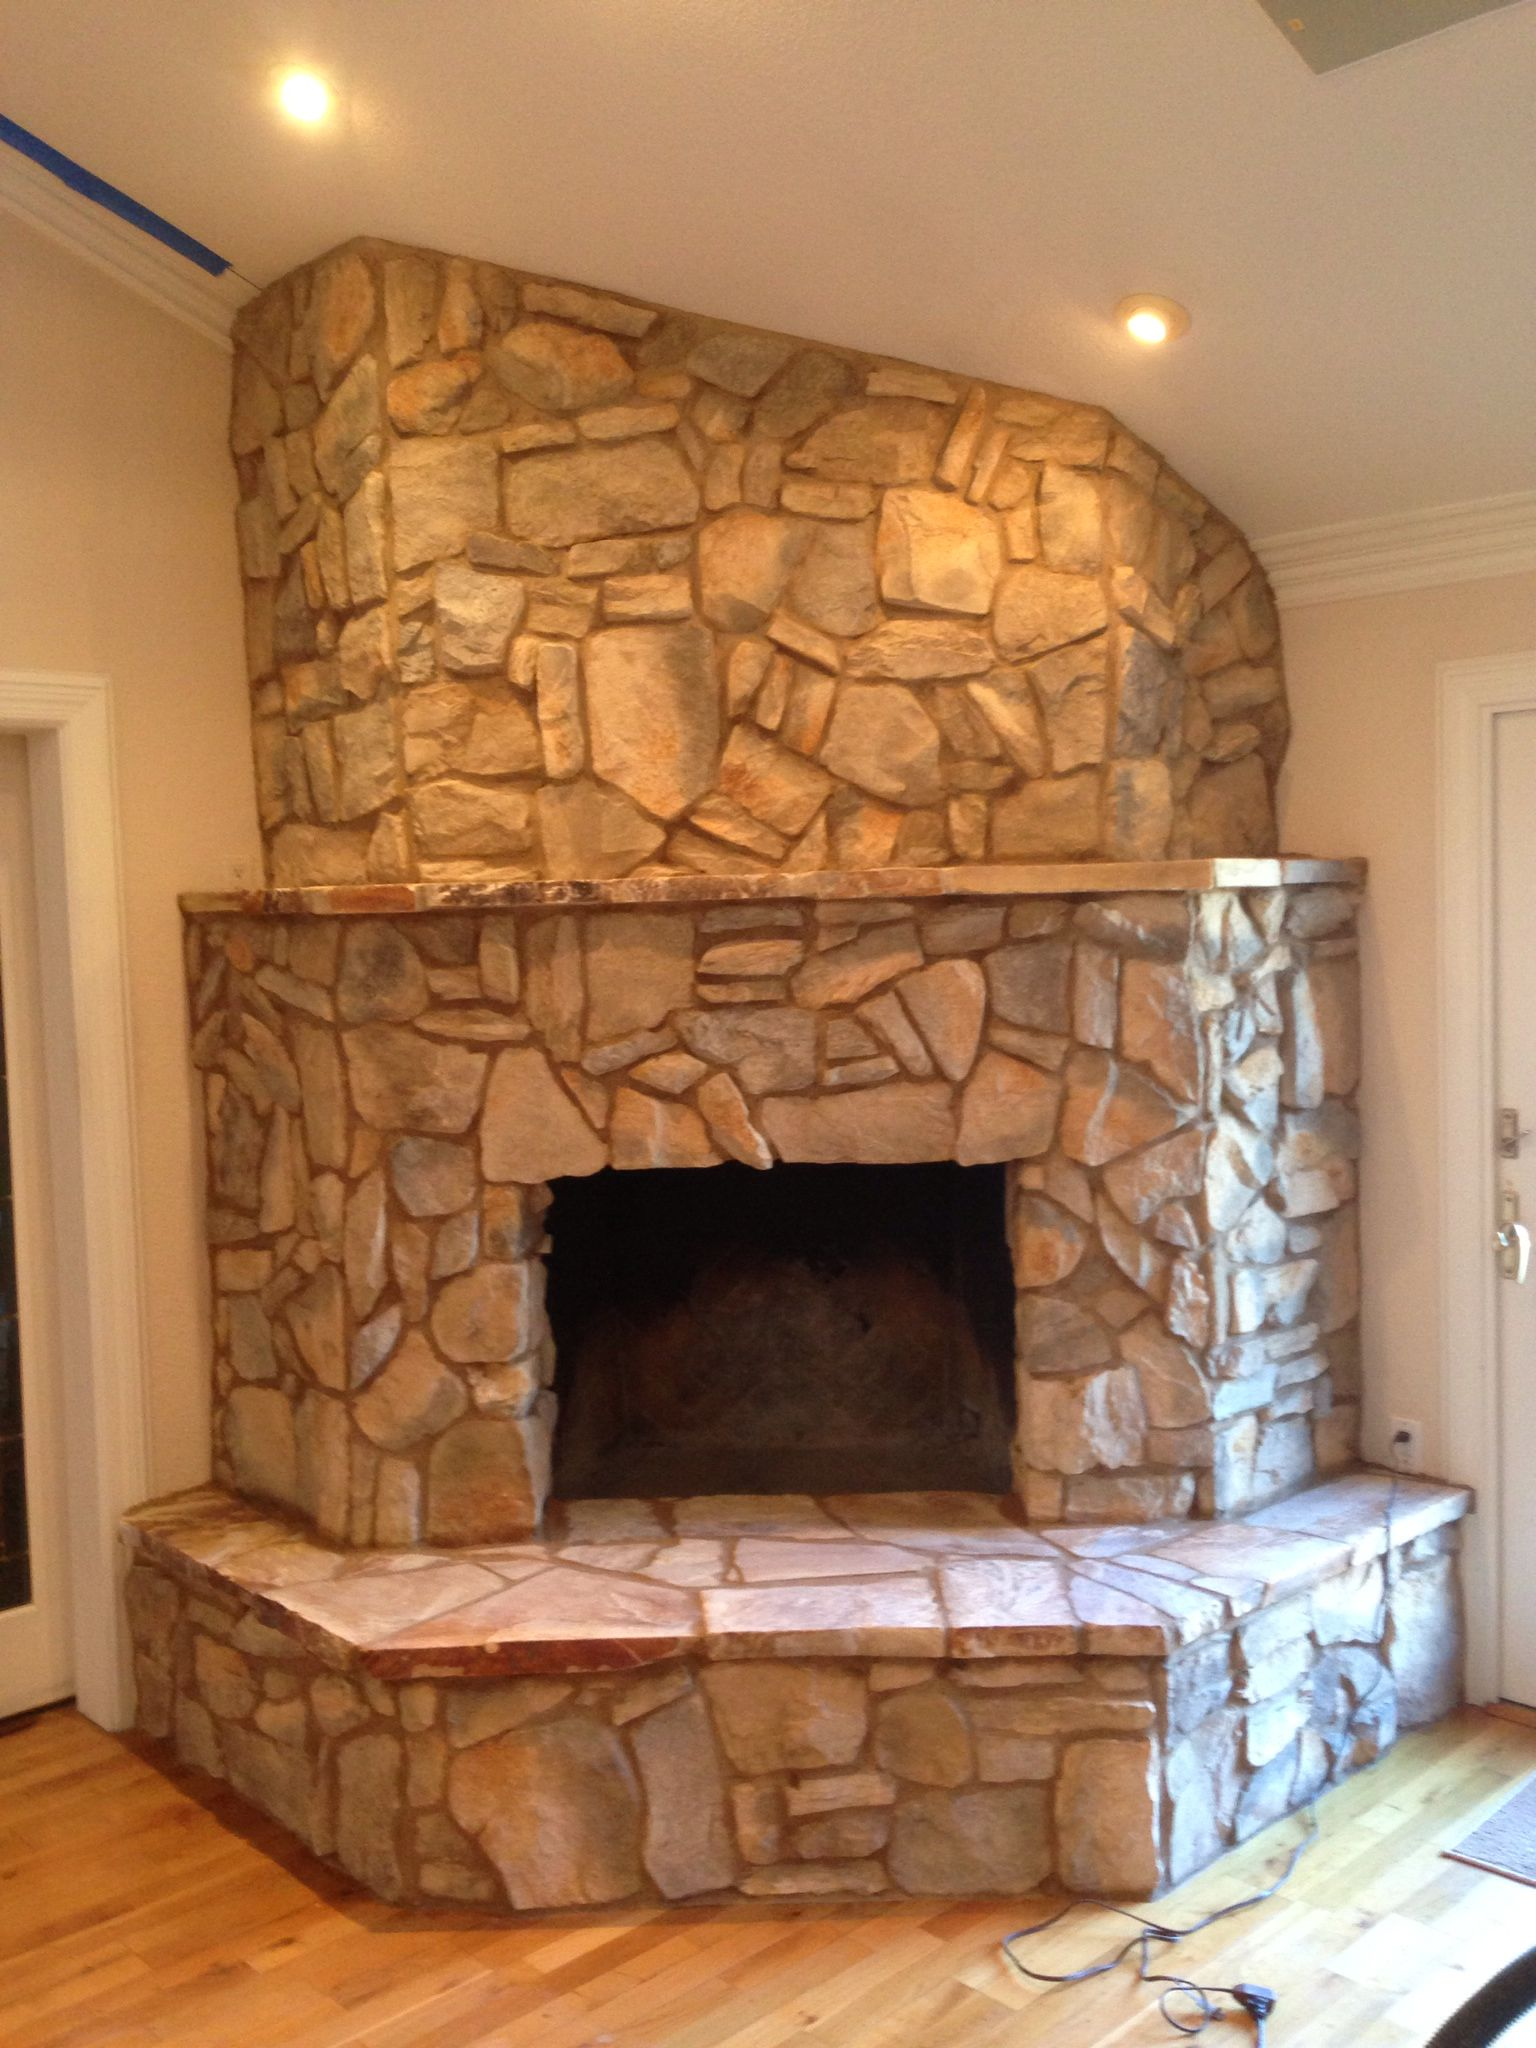 Stone Fireplace Face By Jones Masonry Dixon,Ca